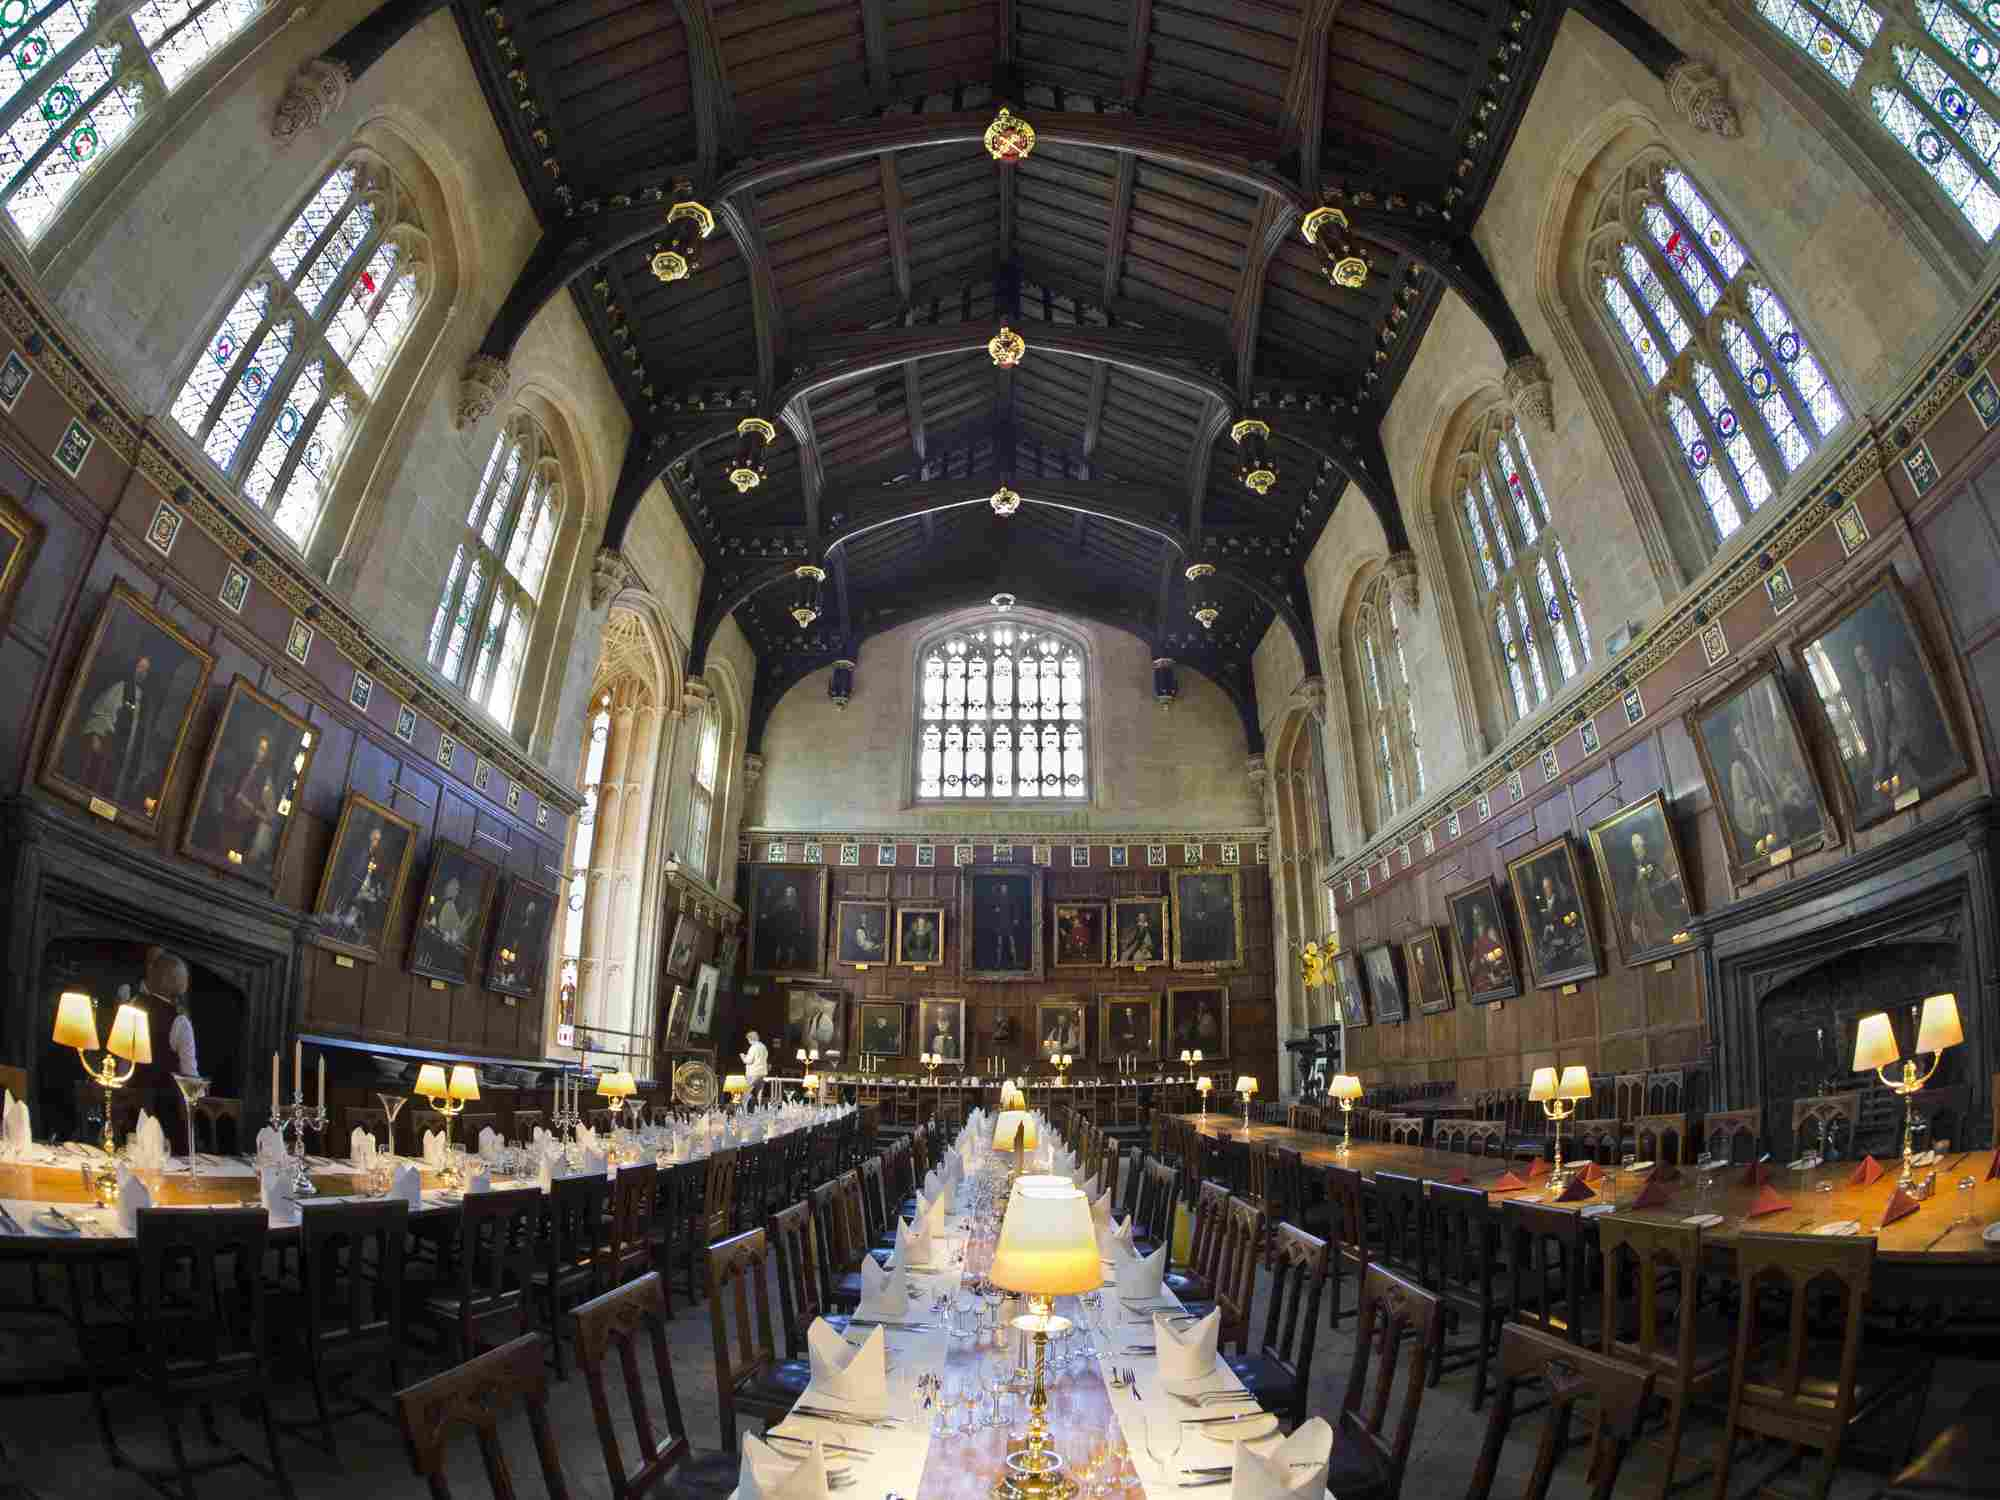 The Great Hall of Christ Church College